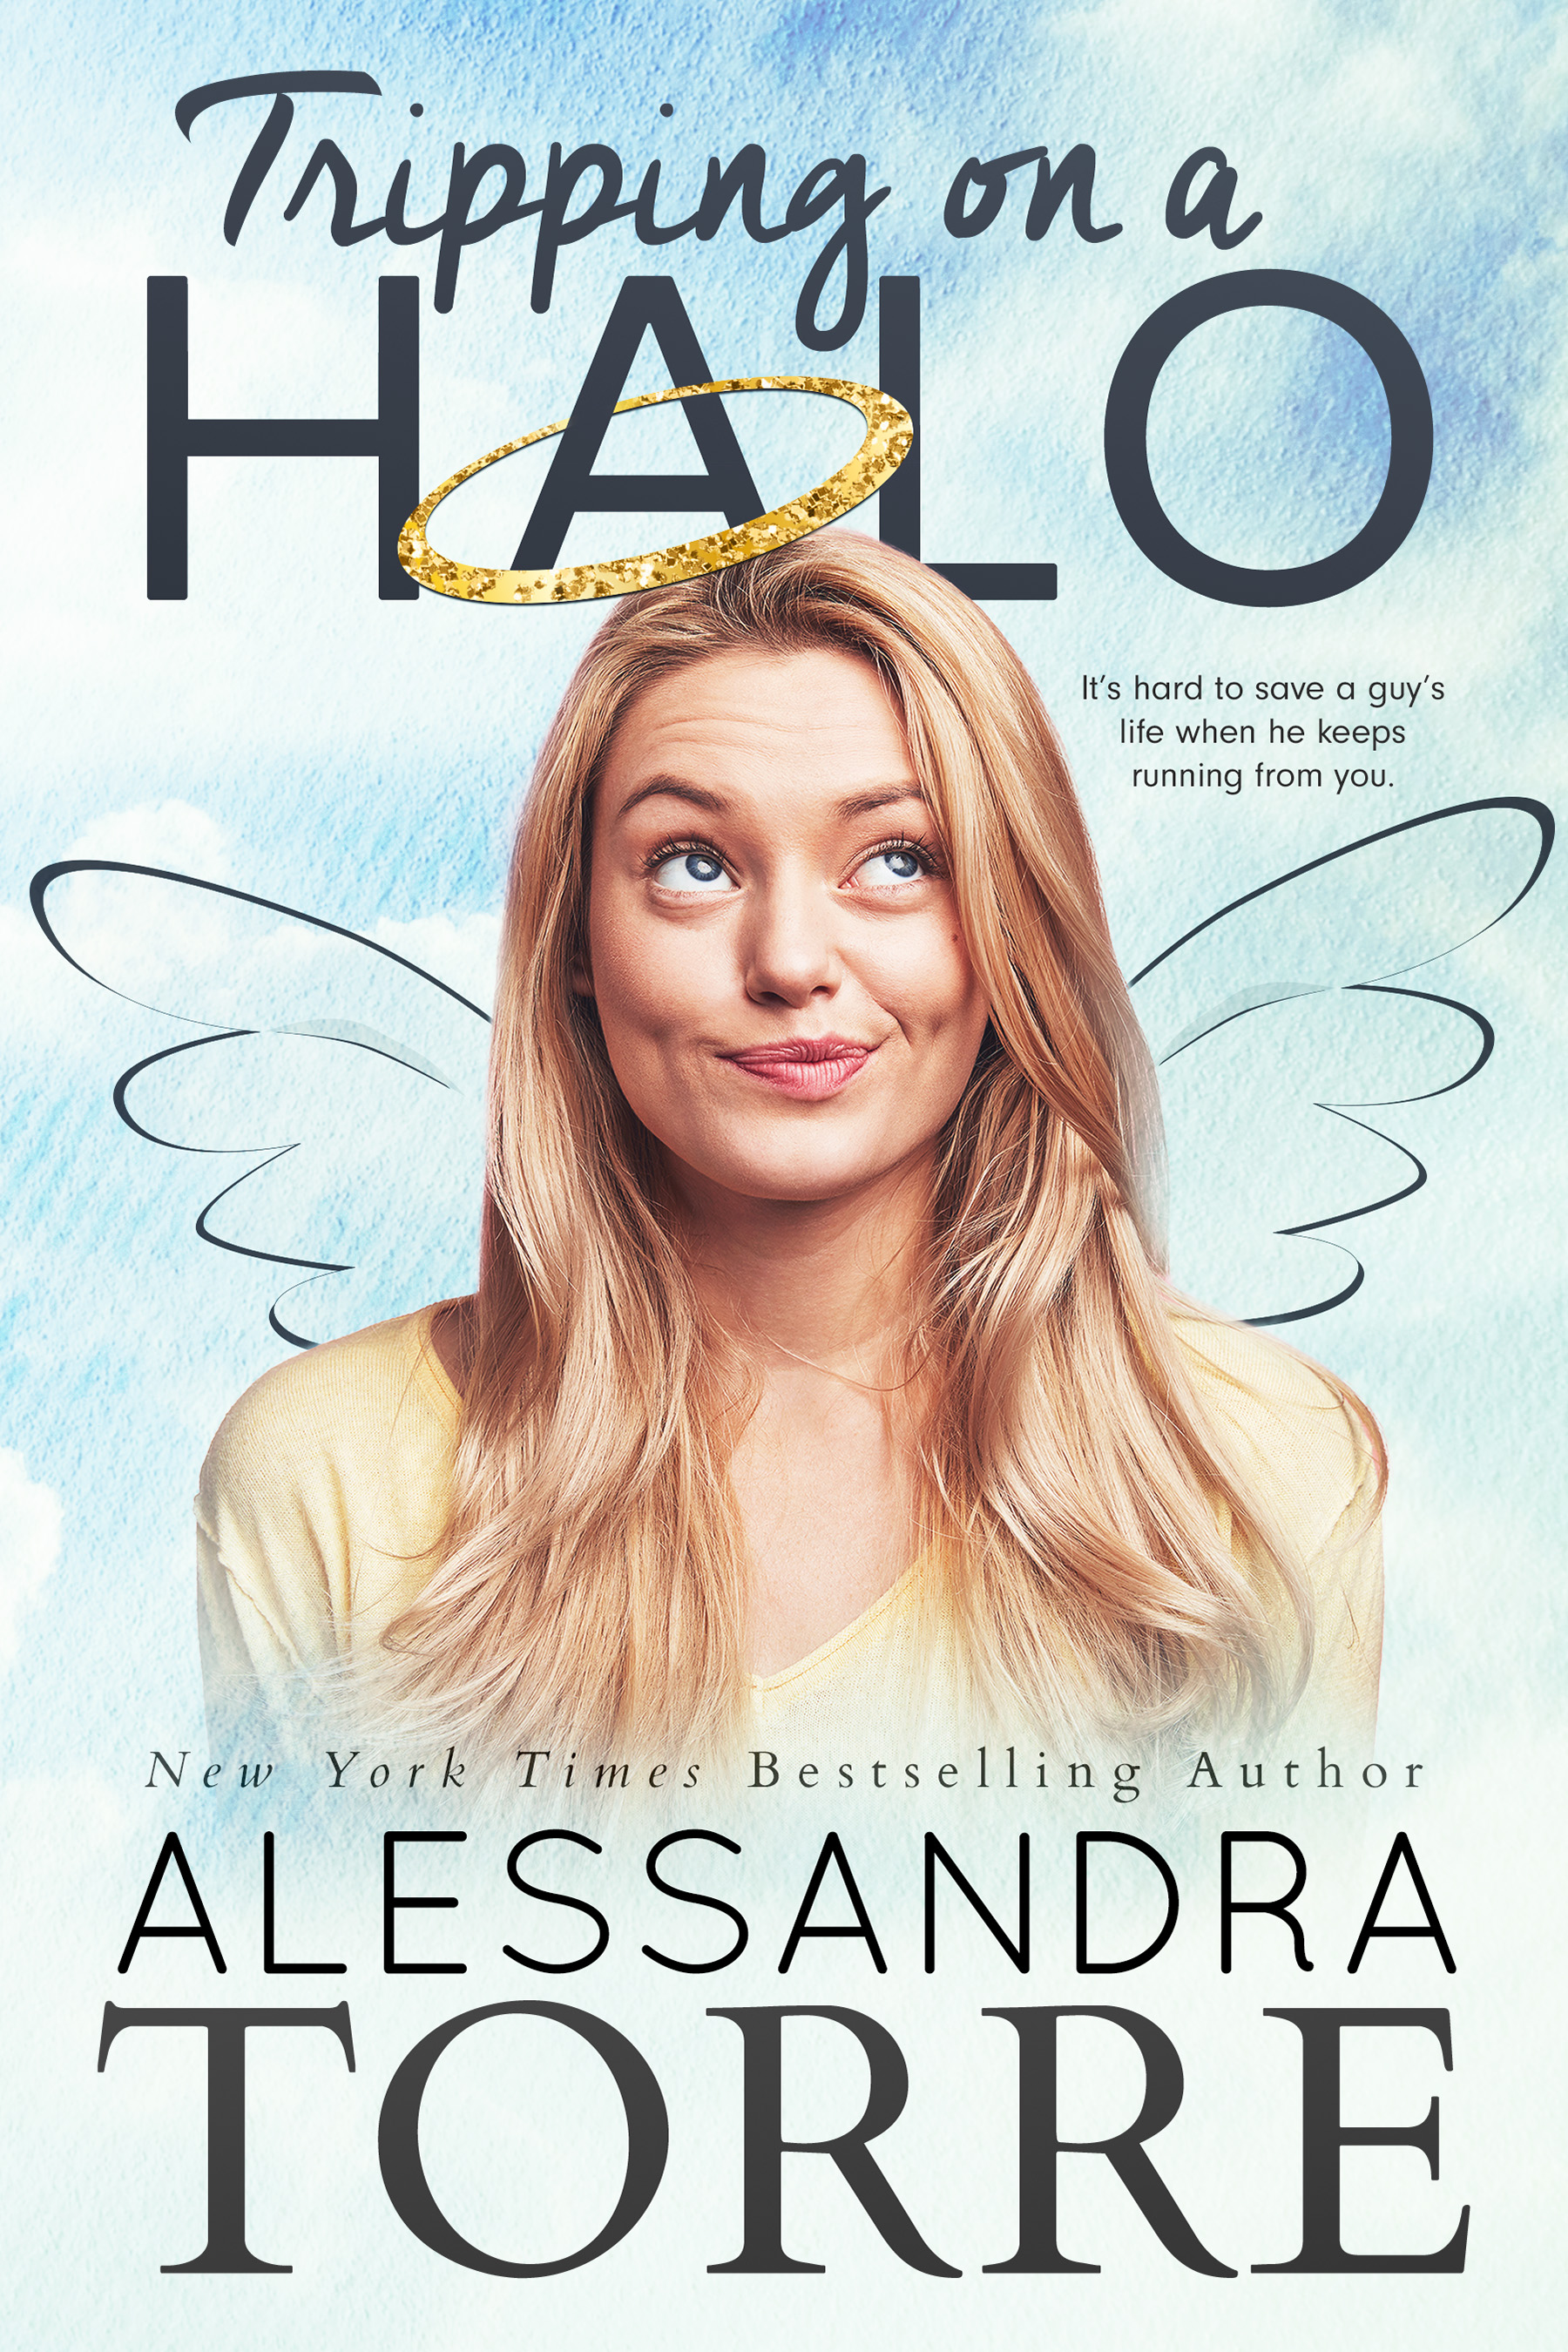 tripping on a halo ebook cover.jpg